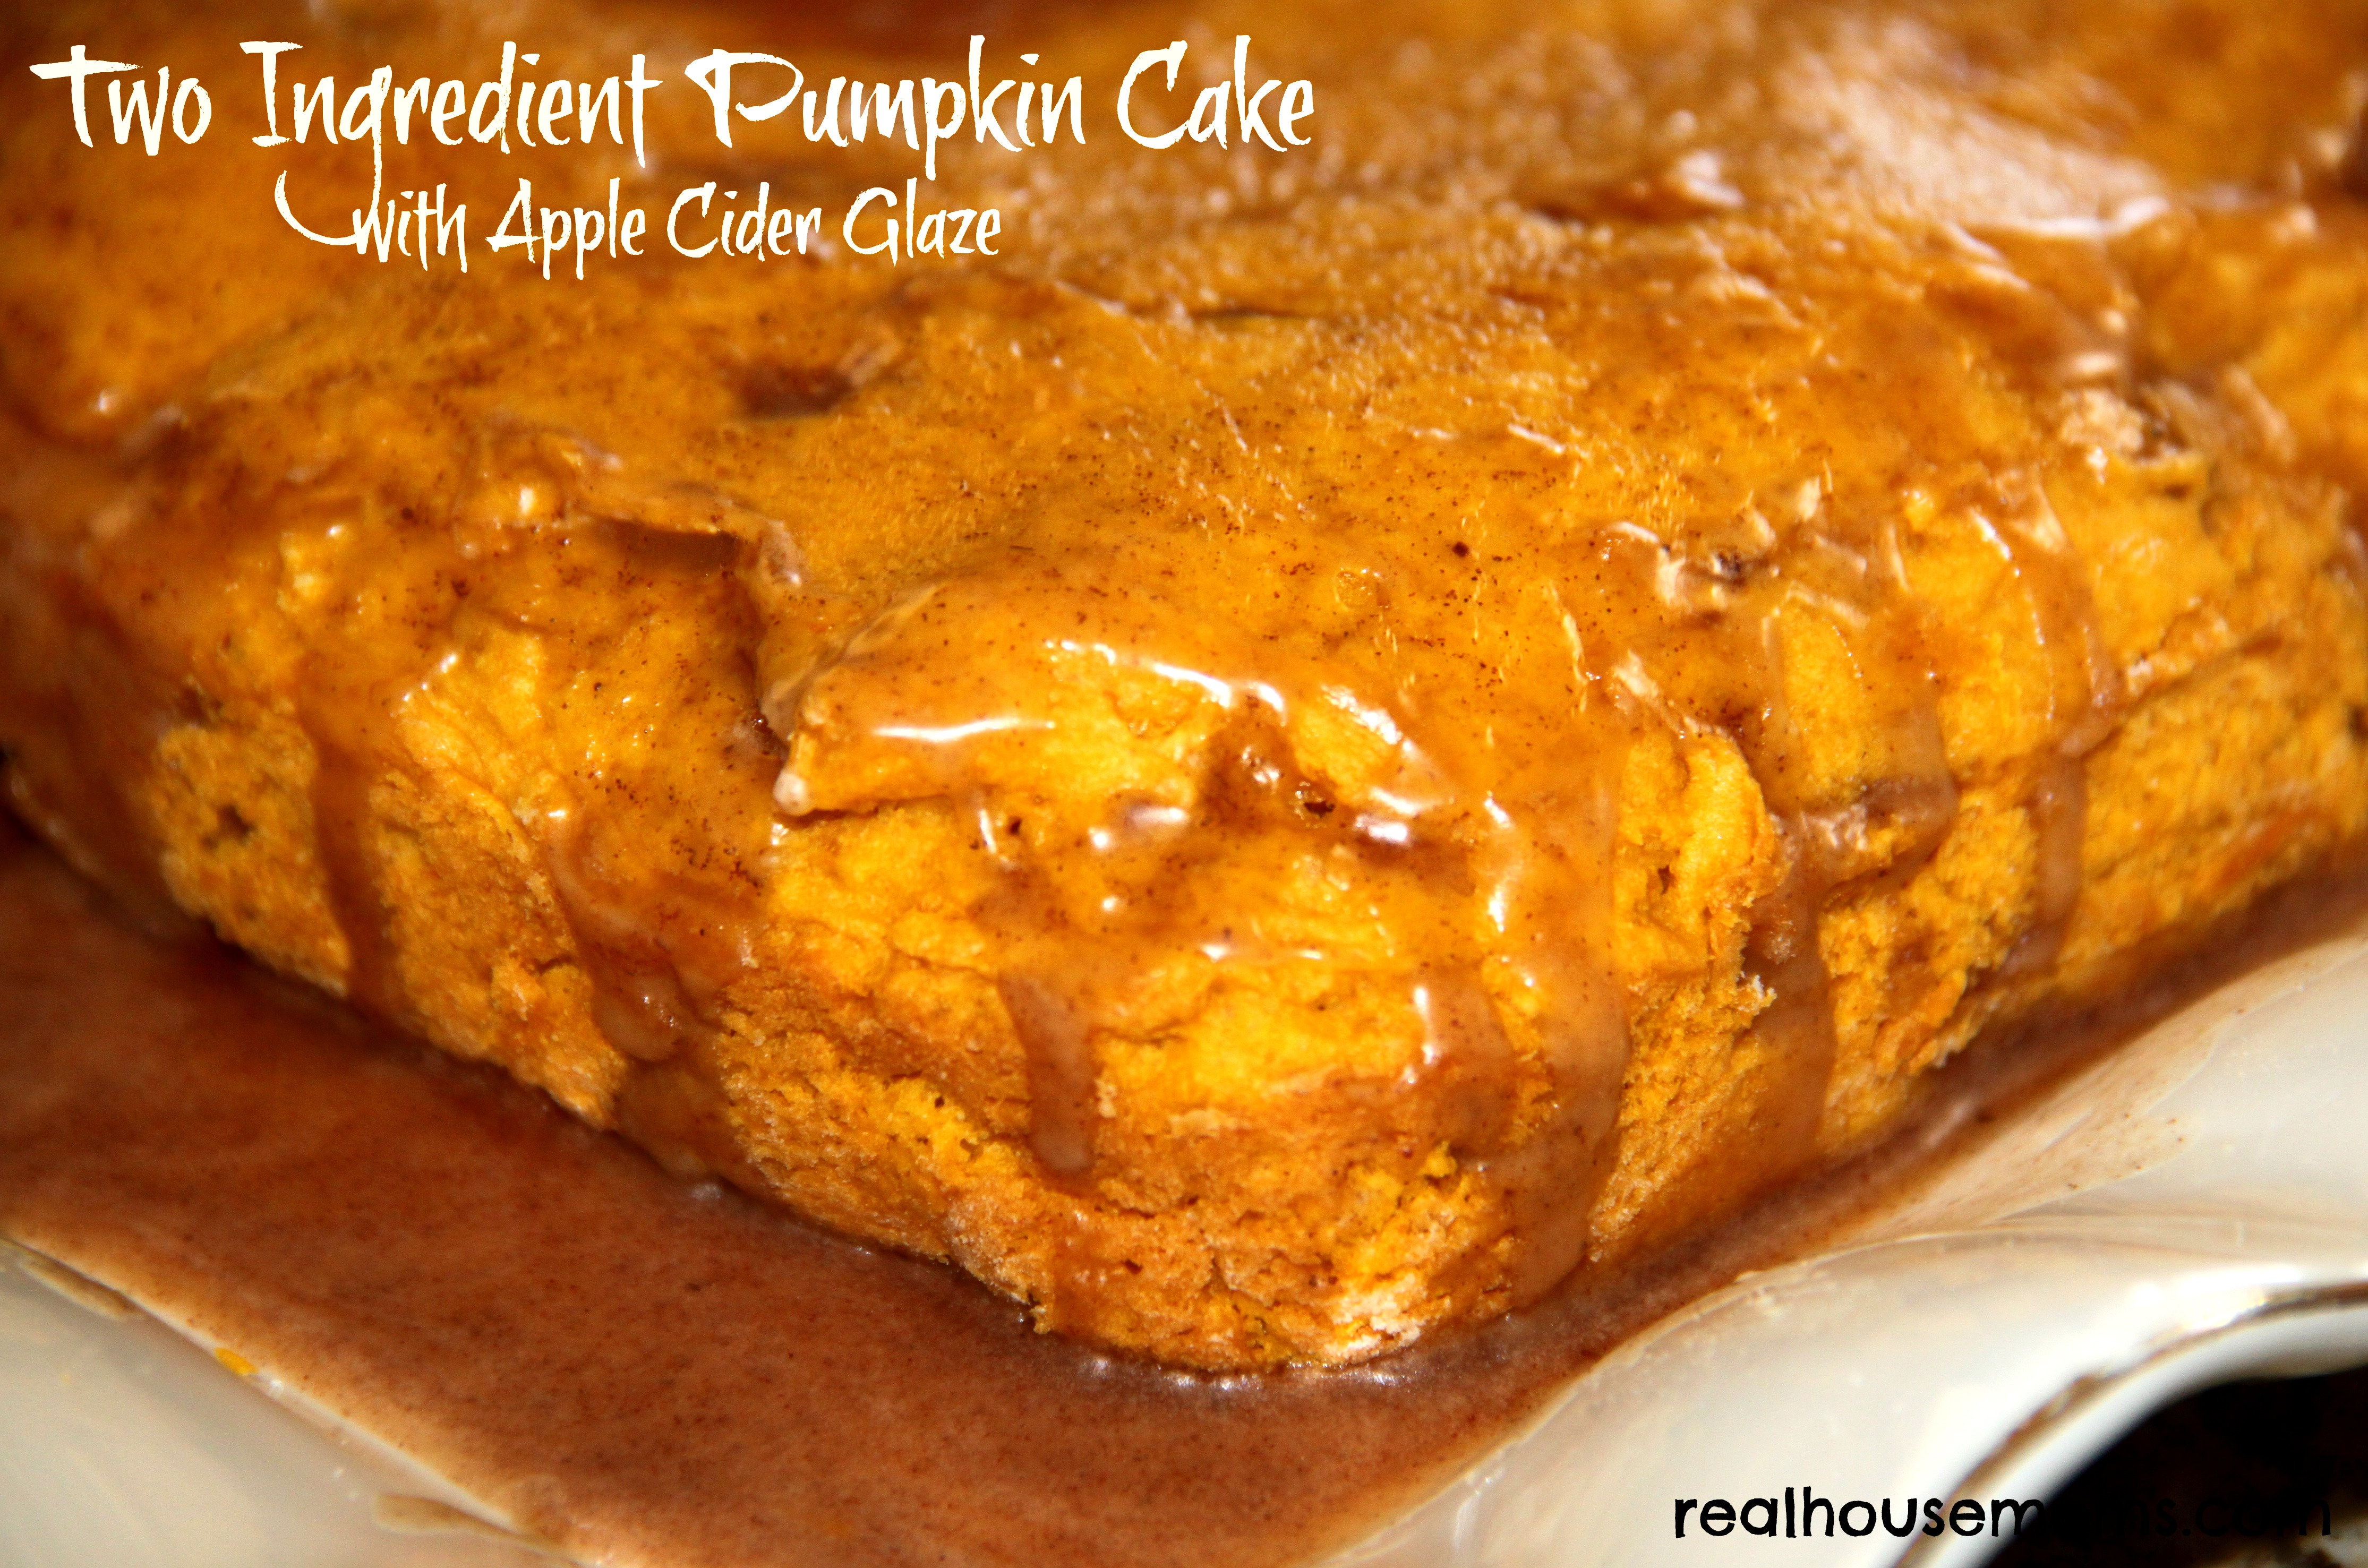 Two Ingredient Pumpkin Desserts